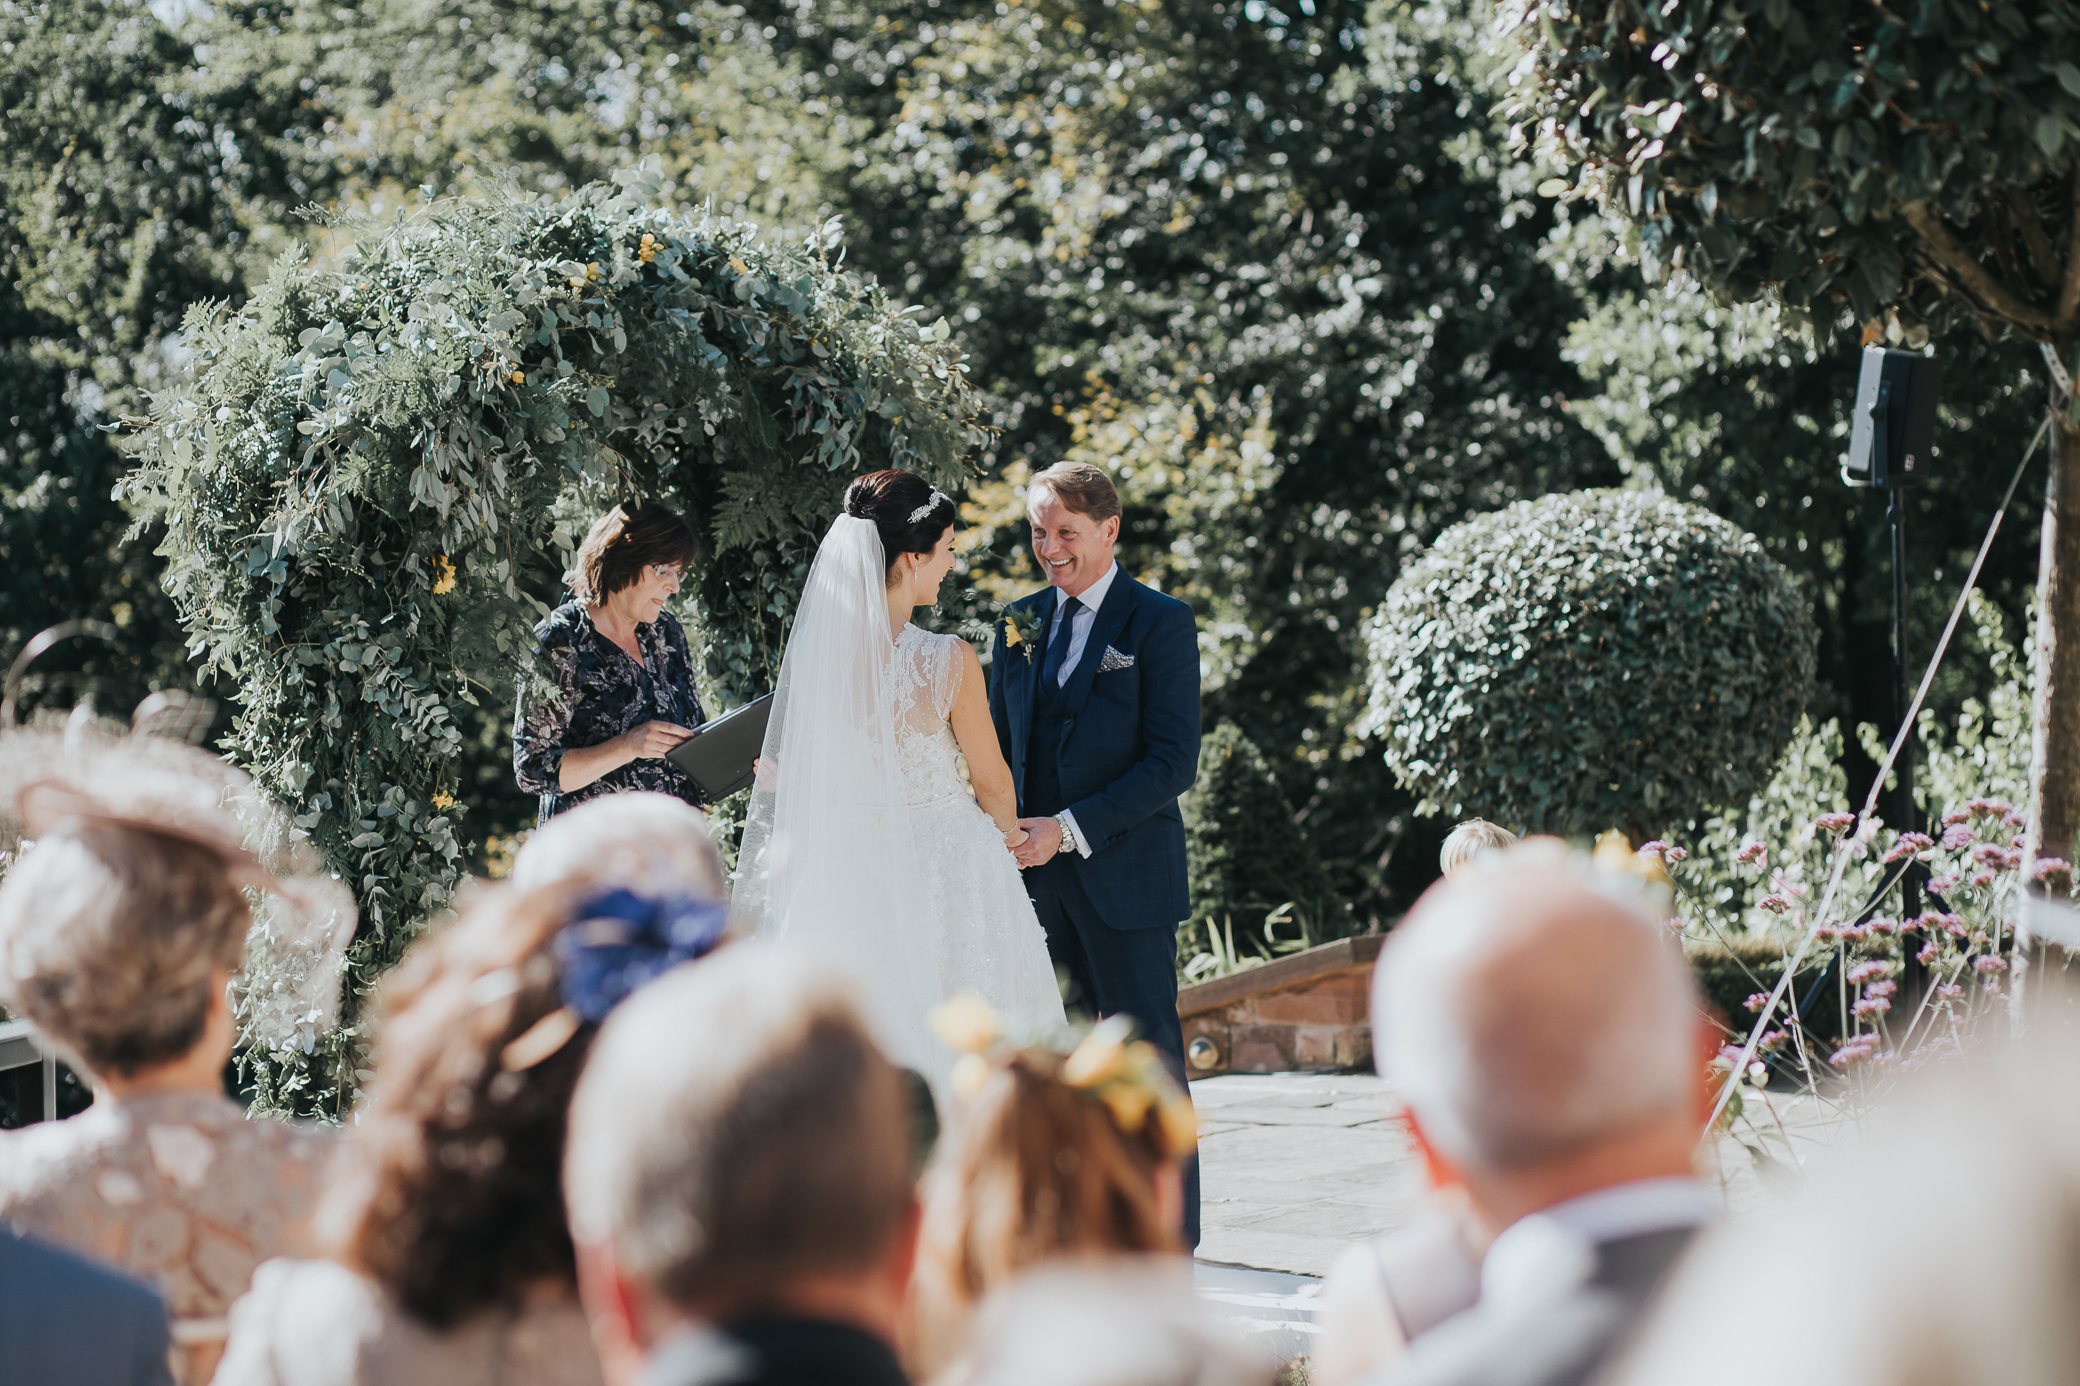 a beautiful wedding on a stunning September day - outdoor ceremony that included a Celtic hand-fasting'